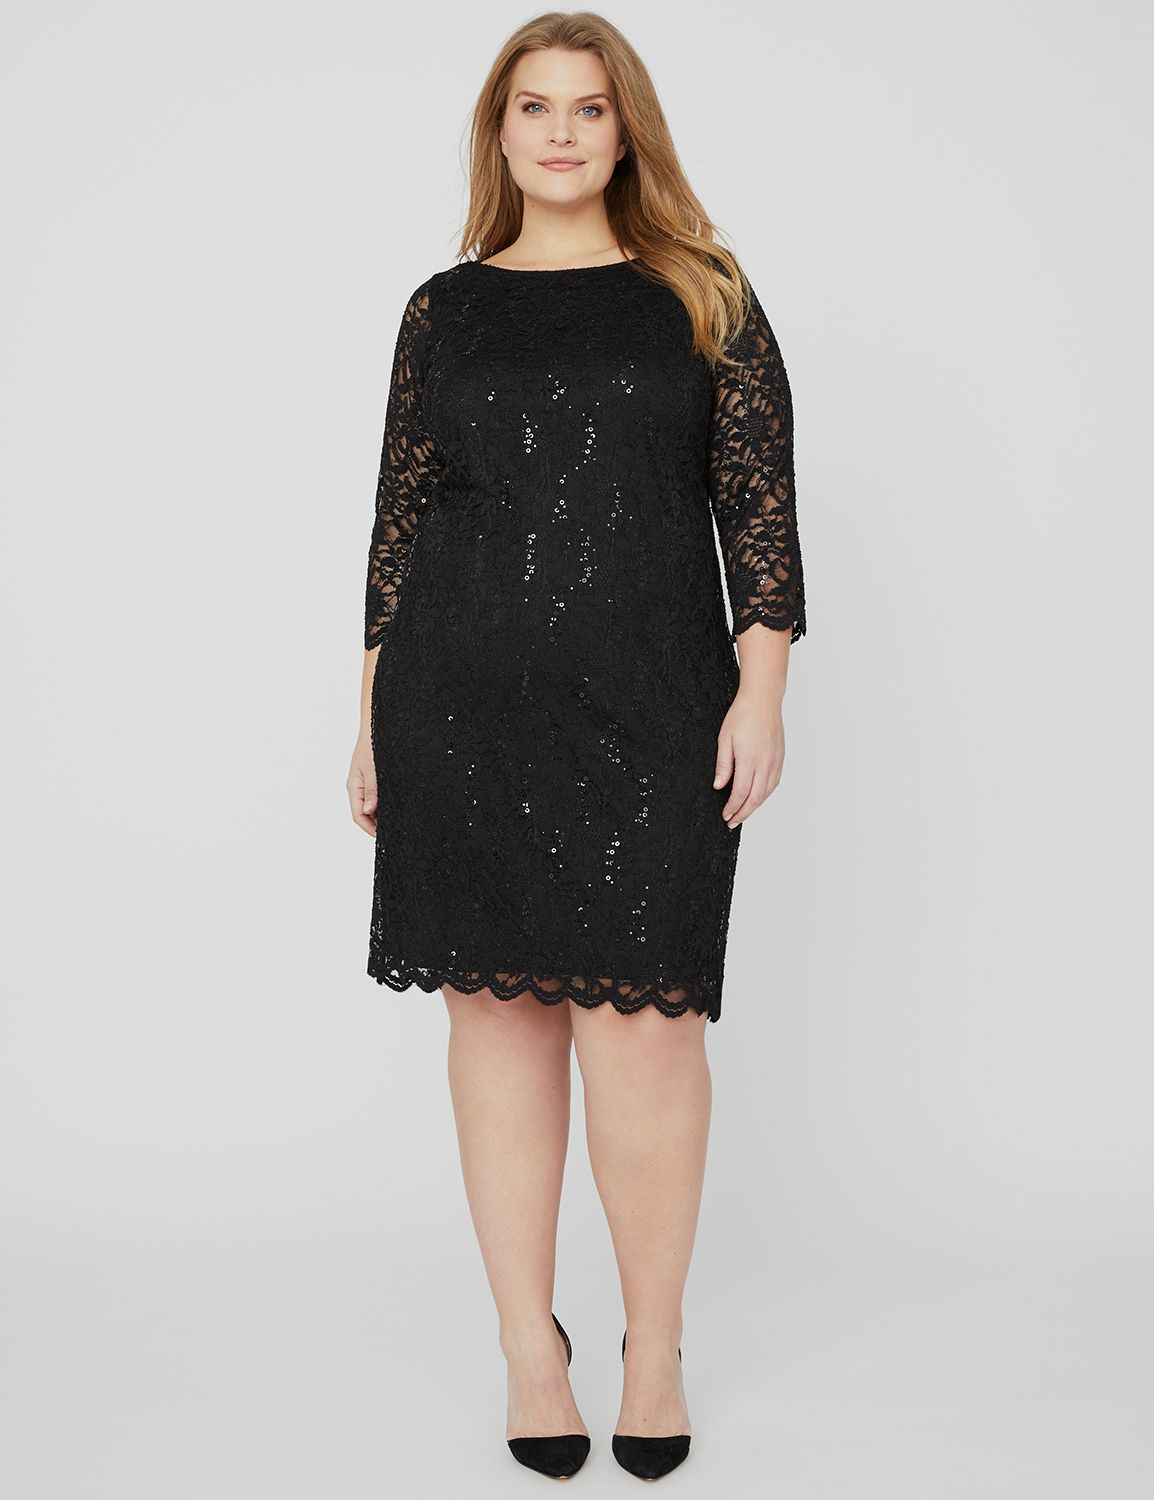 Sequin Lace Shift Dress 1093614 Lace Shift - #88922 MP-300107393